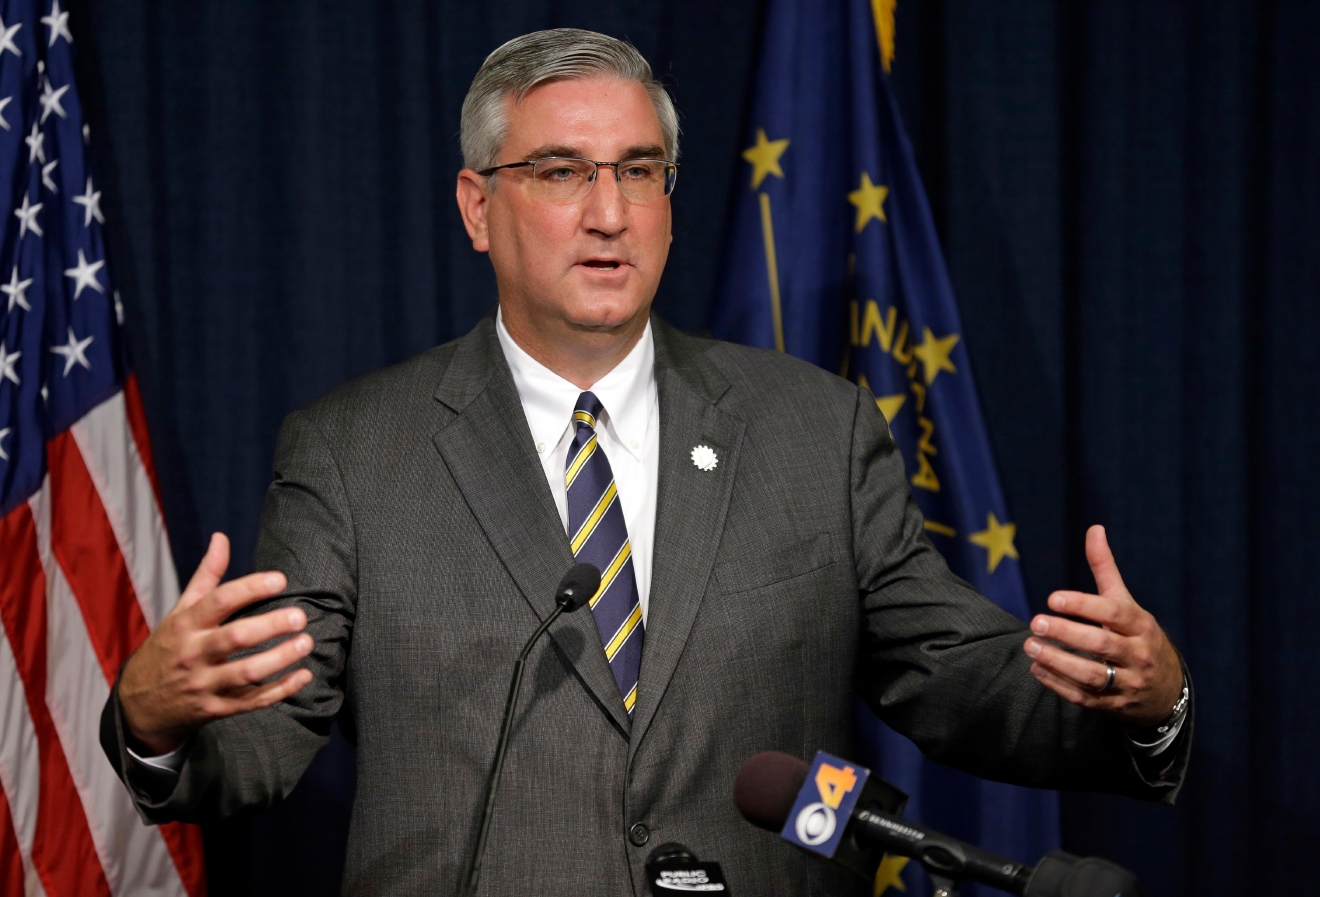 Indiana Lt. Gov. Eric Holcomb discusses the state's fiscal condition following the close of Fiscal Year at the Statehouse in Indianapolis,  (AP Photo/Michael Conroy)